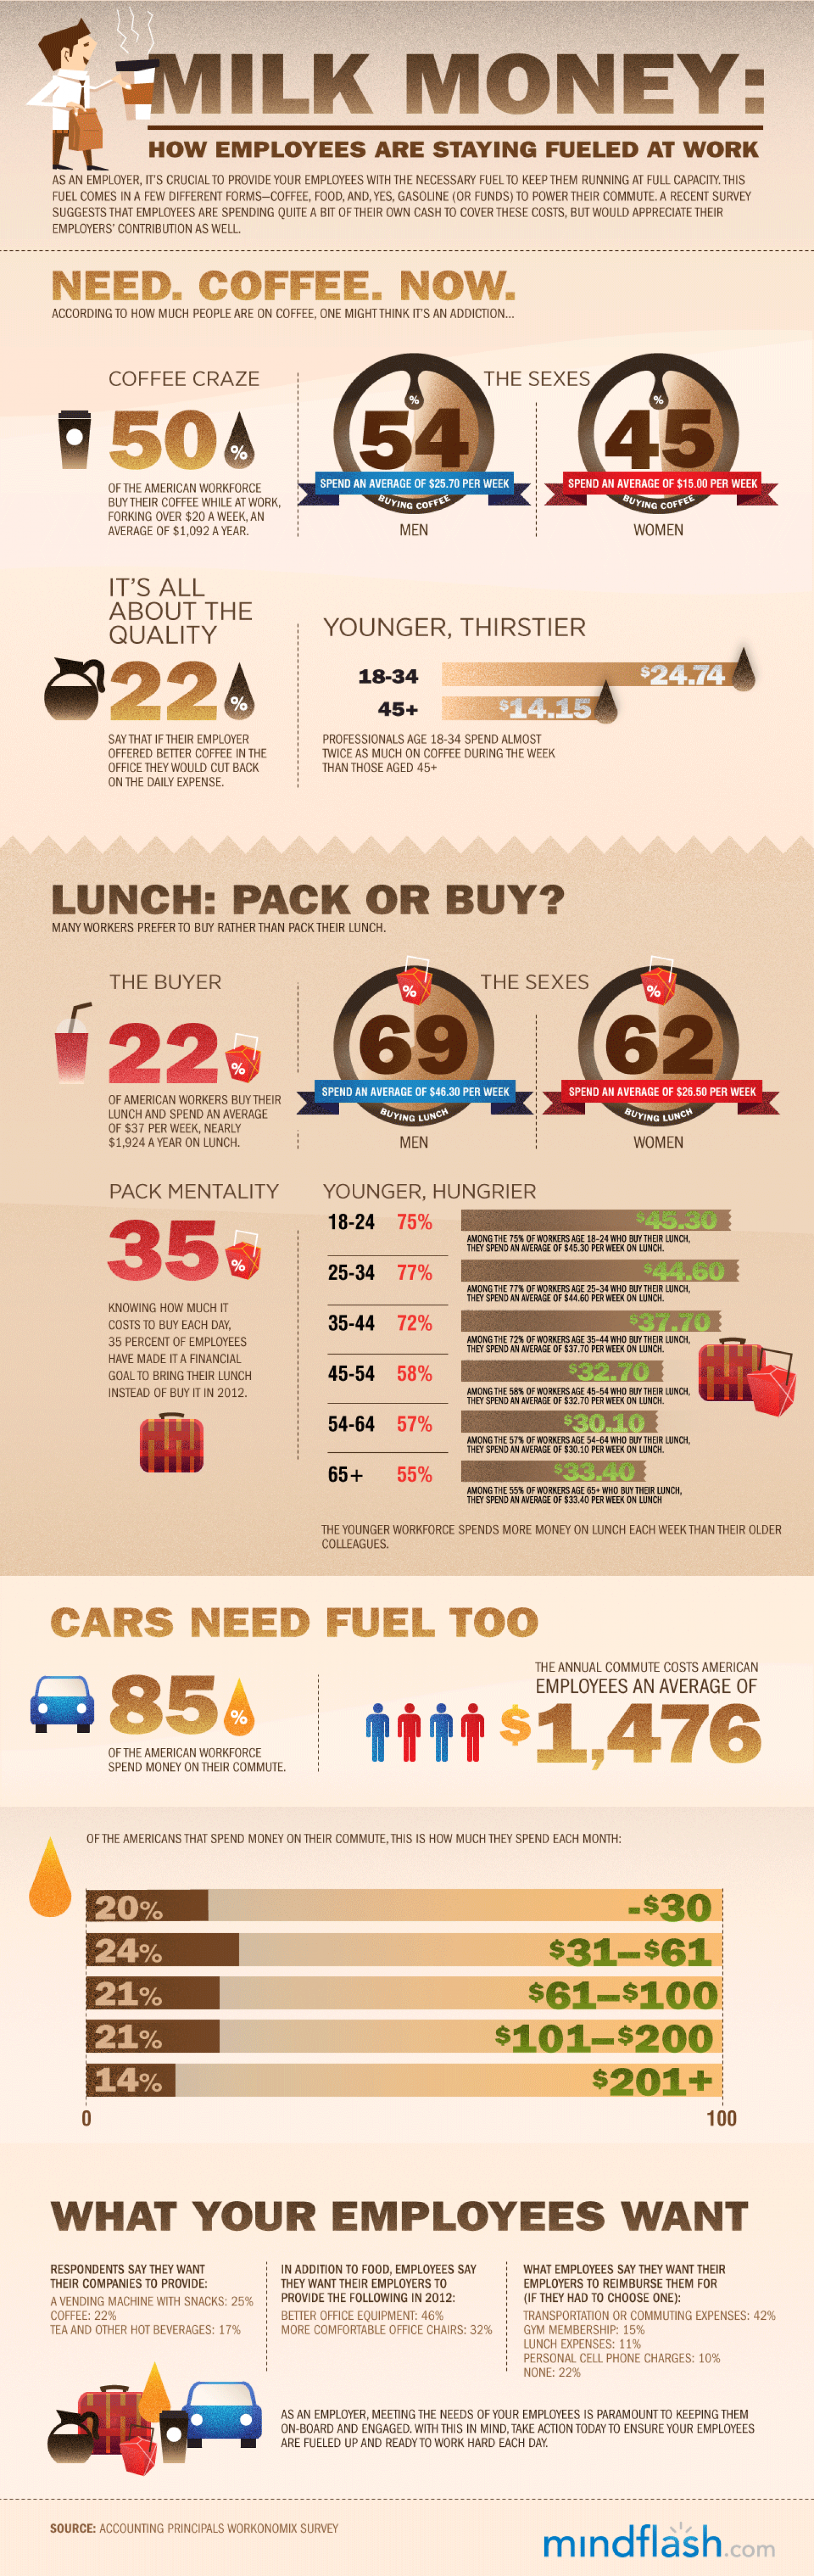 How Employees Are Staying Fueled At Work Infographic